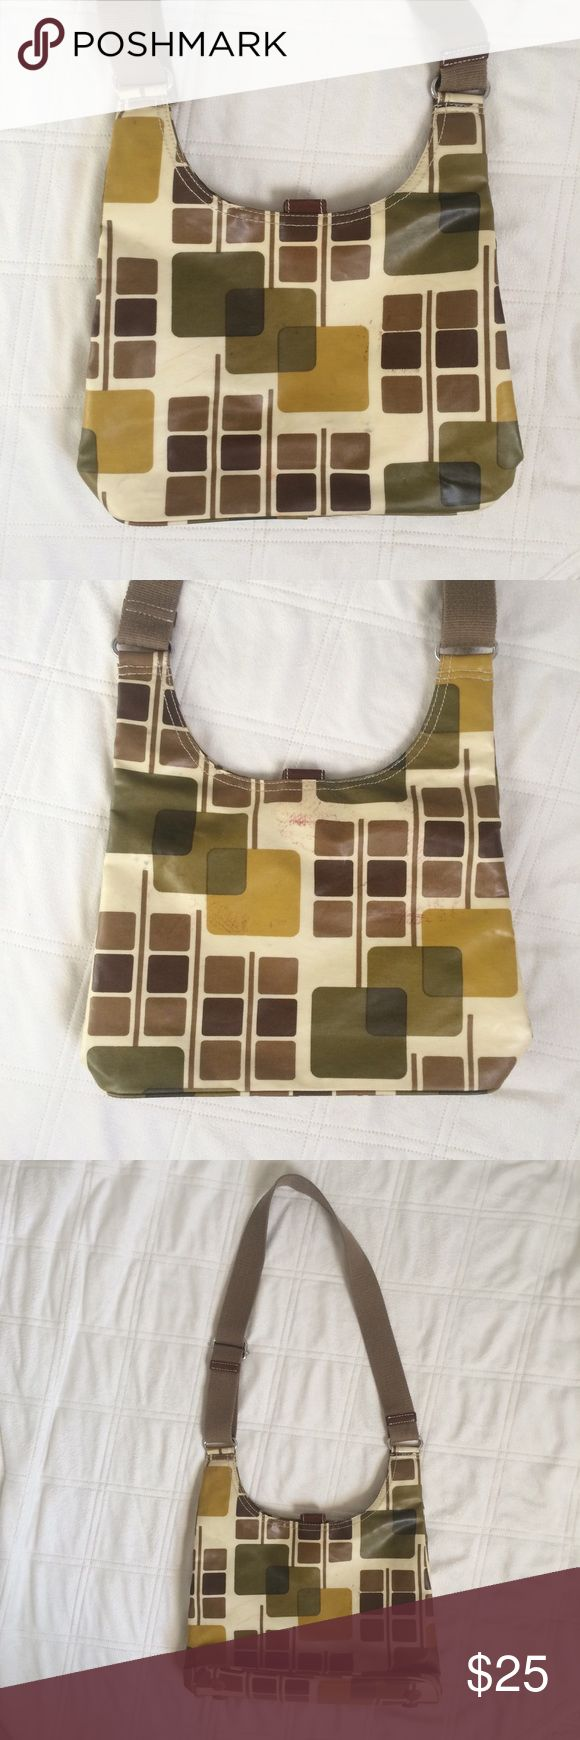 """ORLA KIELY CROSSBODY GEOMETRIC LAMINATED BAG Such a fun retro style print! ORLA KIELY laminated cotton crossbody purse. Exterior shoes wear, please see photos. Interior in excellent condition. Magnetic closure, feet on the bottom, canvas adjustable strap, elastic key holder, one interior zippered pocket wit two additional interior pockets. 13"""" wide by 13"""" tall. There are exterior stains and the price reflects this. Orla Kiely Bags Crossbody Bags"""